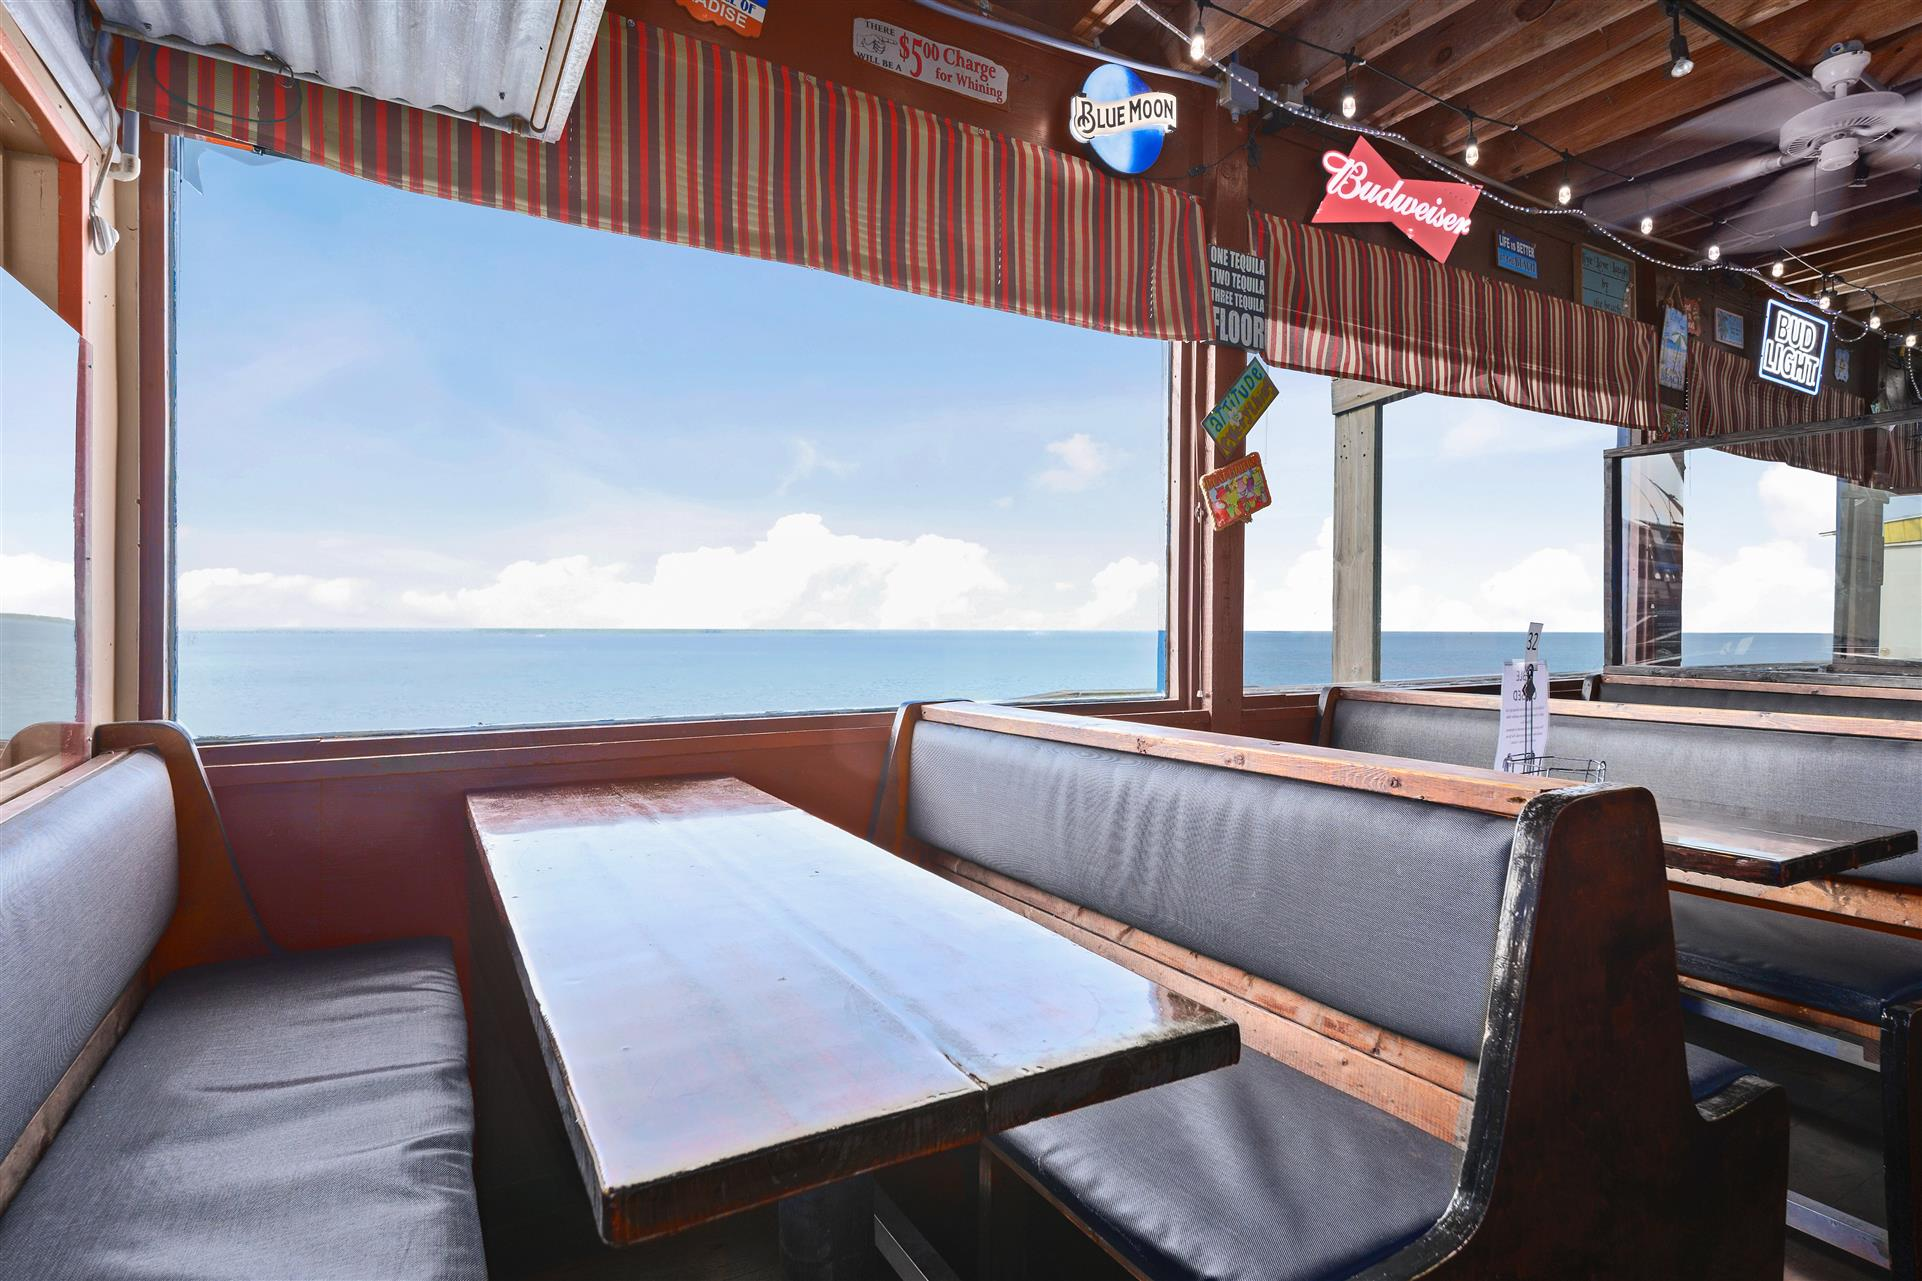 indoor dining booth overlooking a view of the water